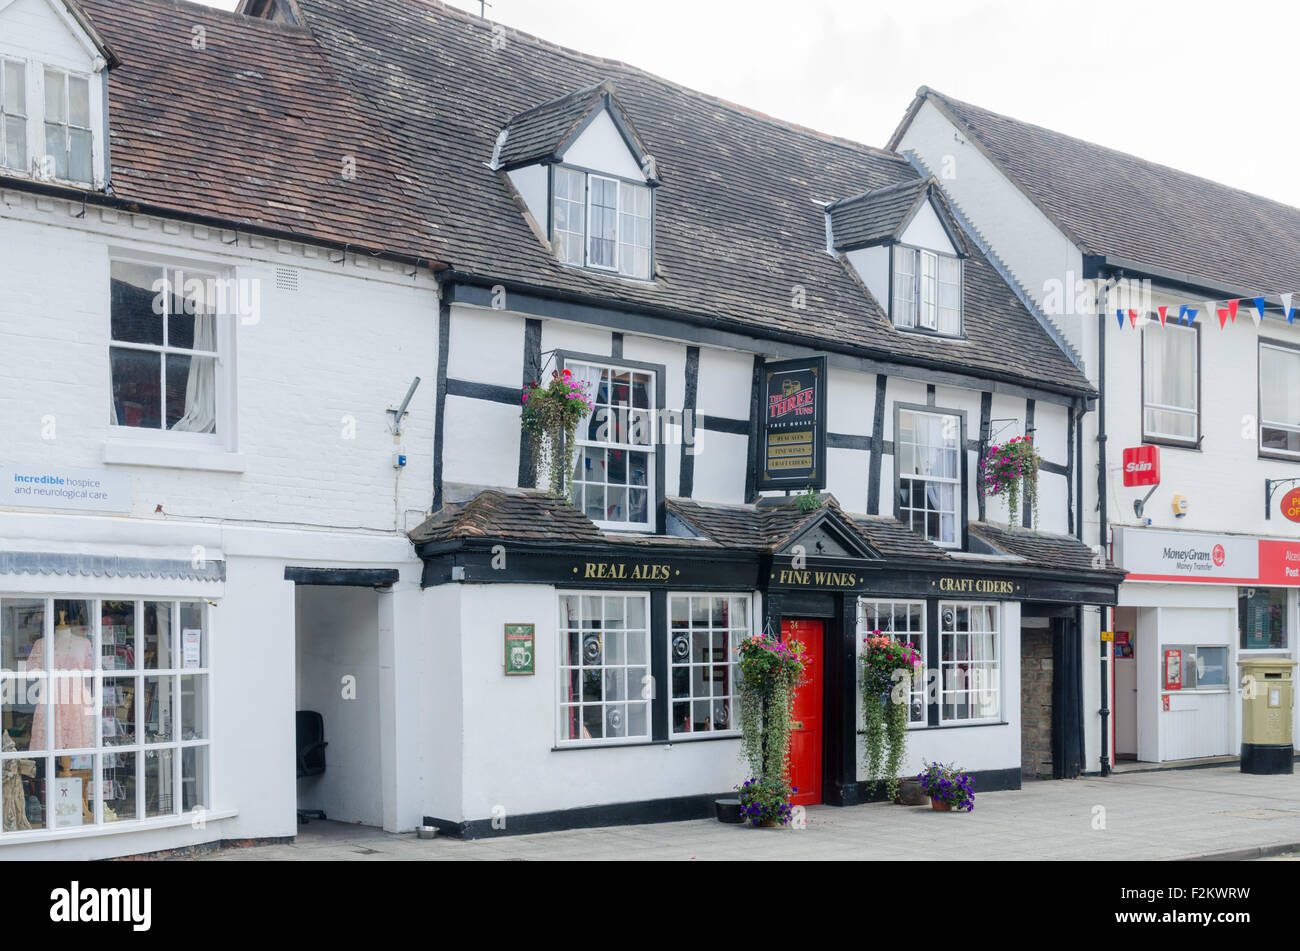 Bed And Breakfast Alcester The Three Tuns Public House In Alcester Warwickshire Stock Photo